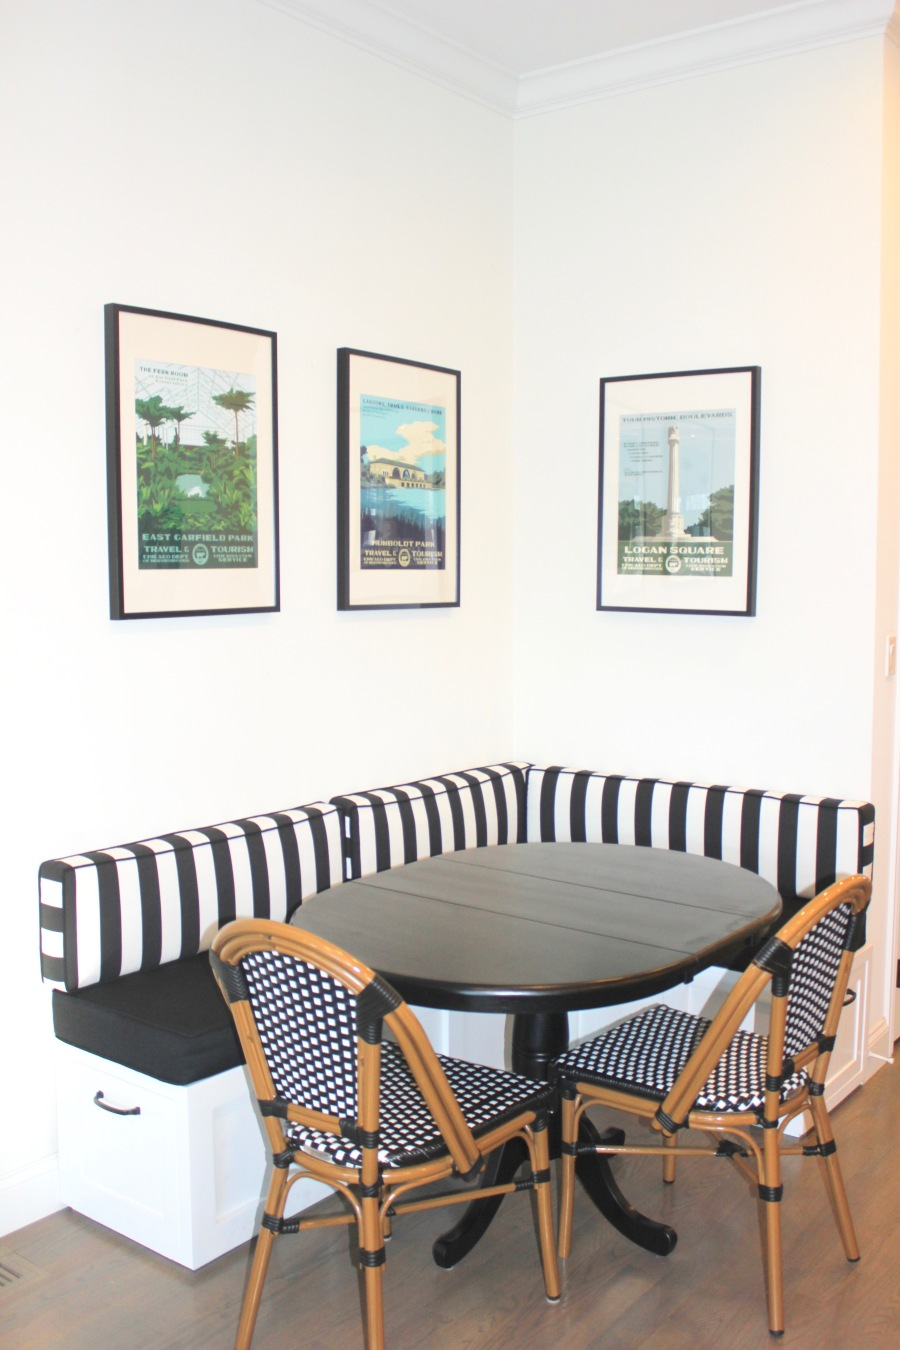 Artesian Designs | Black + White Breakfast Nook...Custom banquette, wayfair round table, one kings lane bistro chairs, chicago neighborhoods art